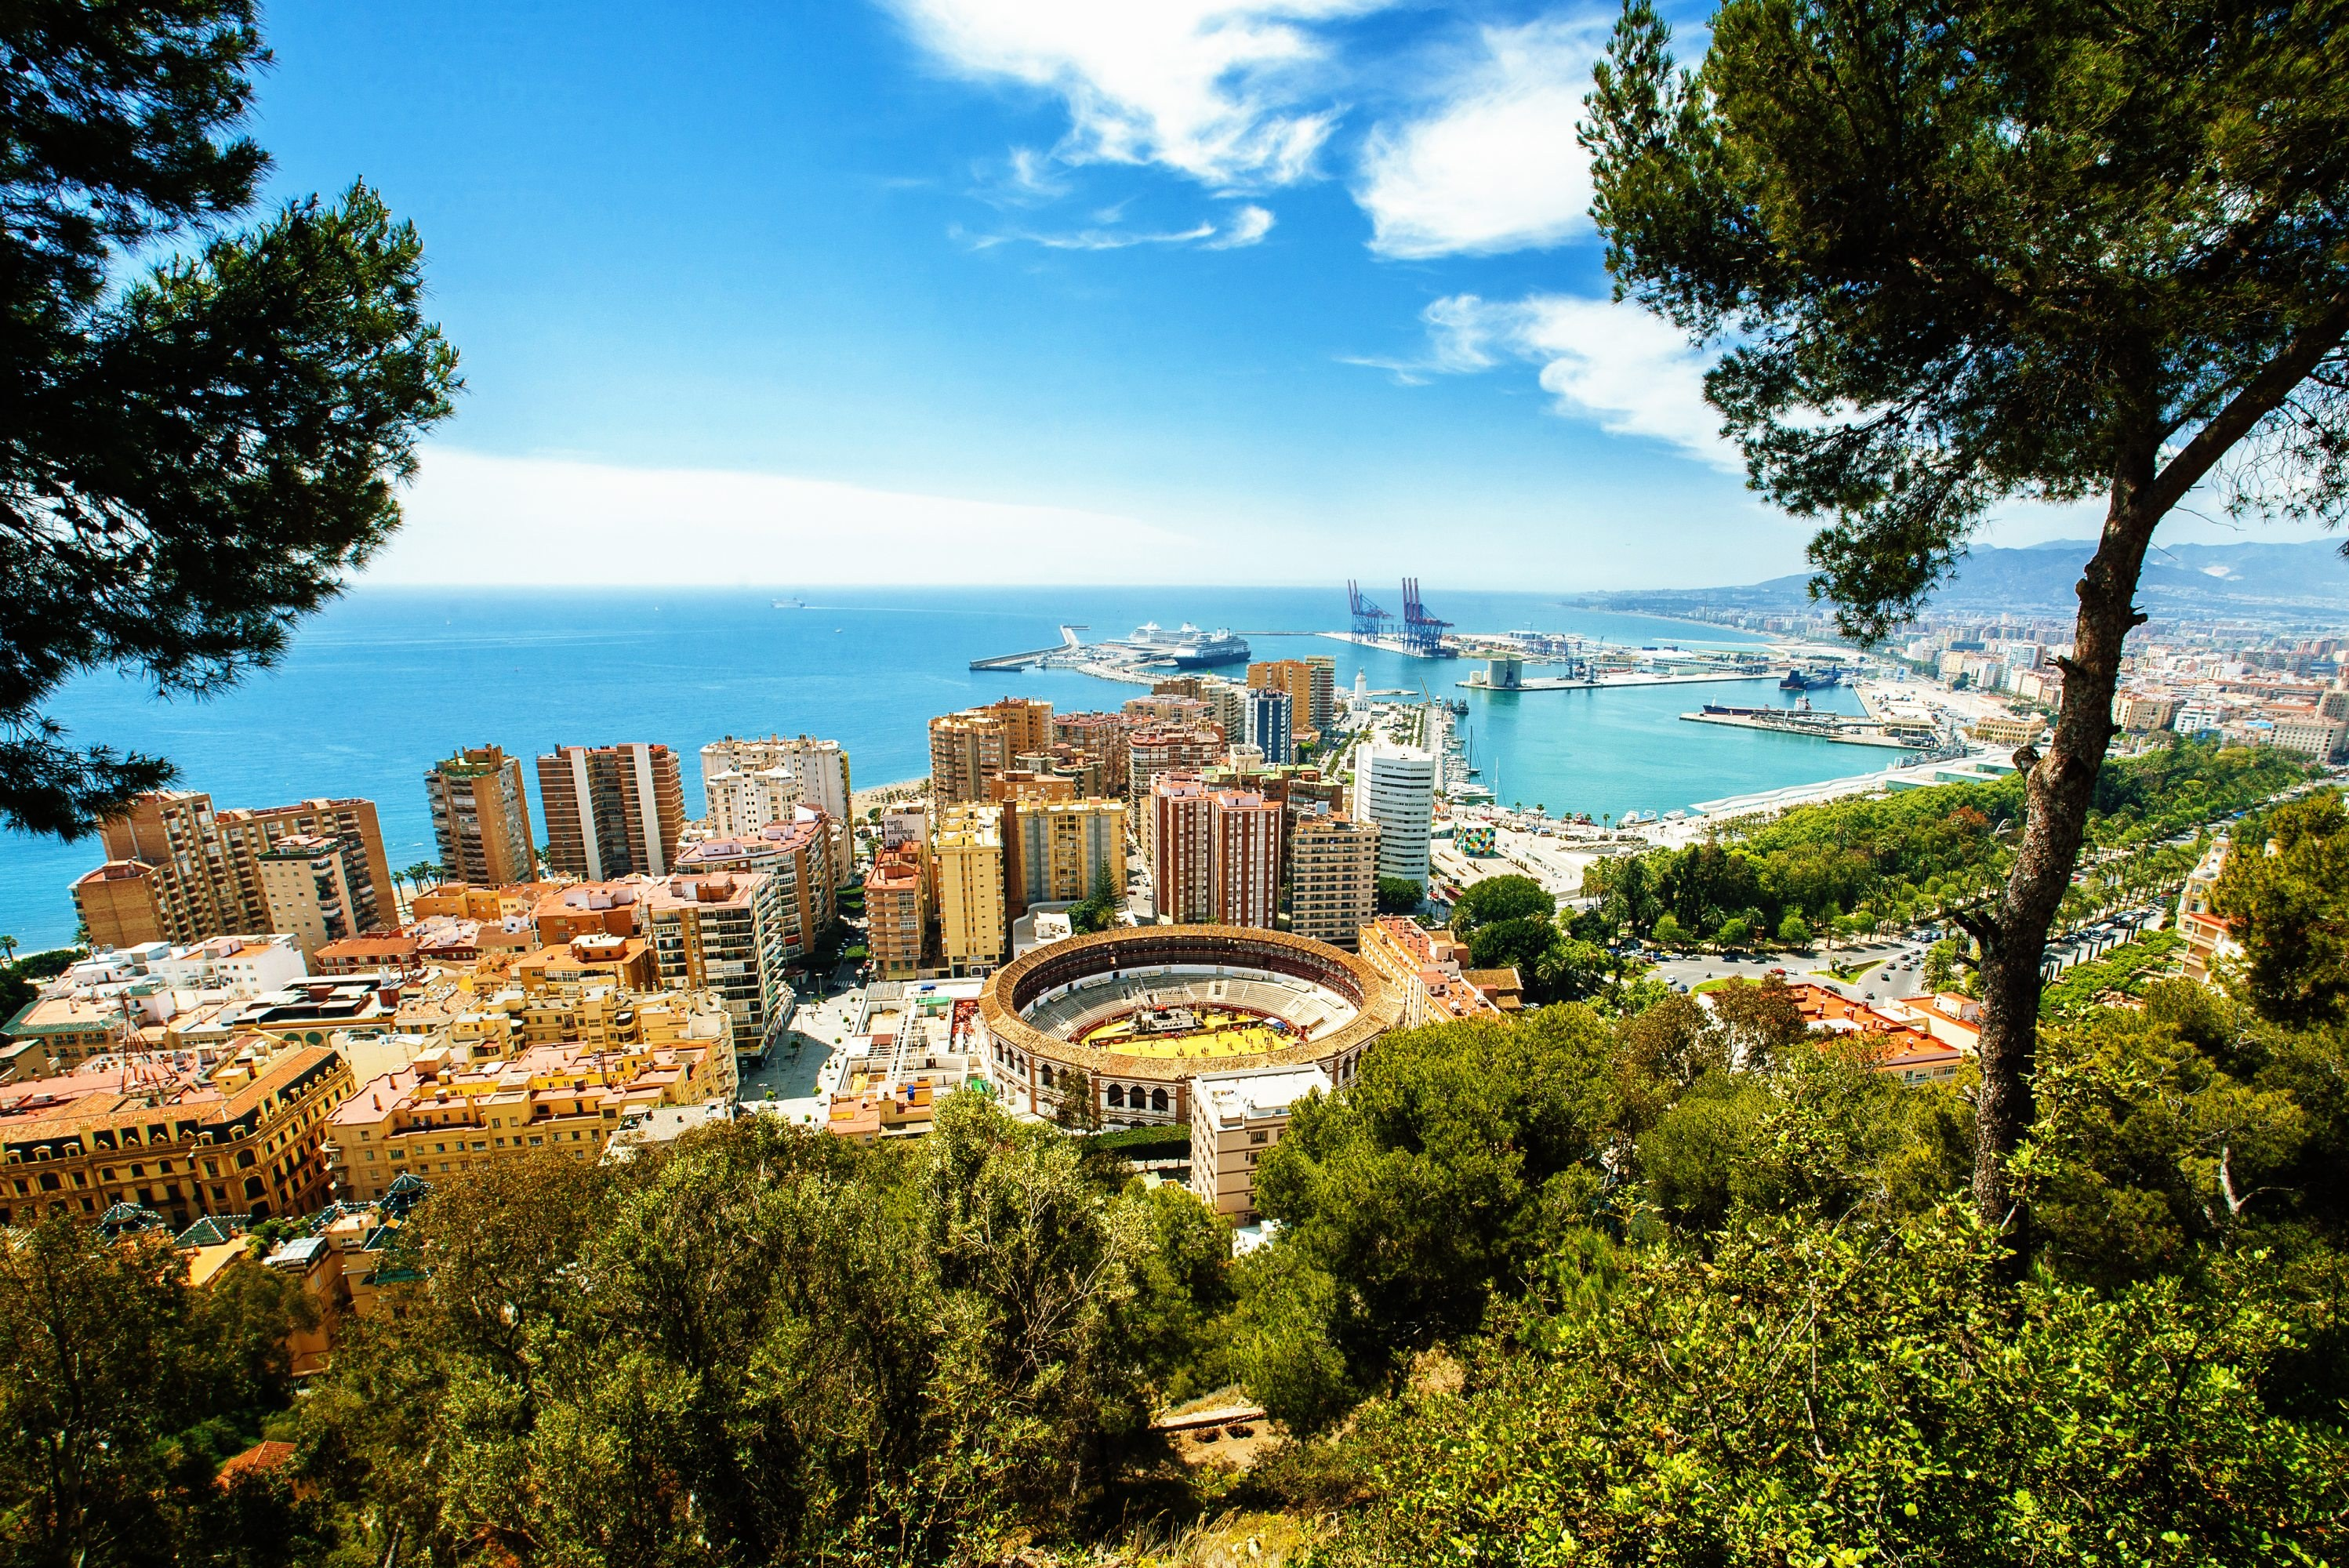 View of the city of Malaga with the bullring and the Port Malaga Spain